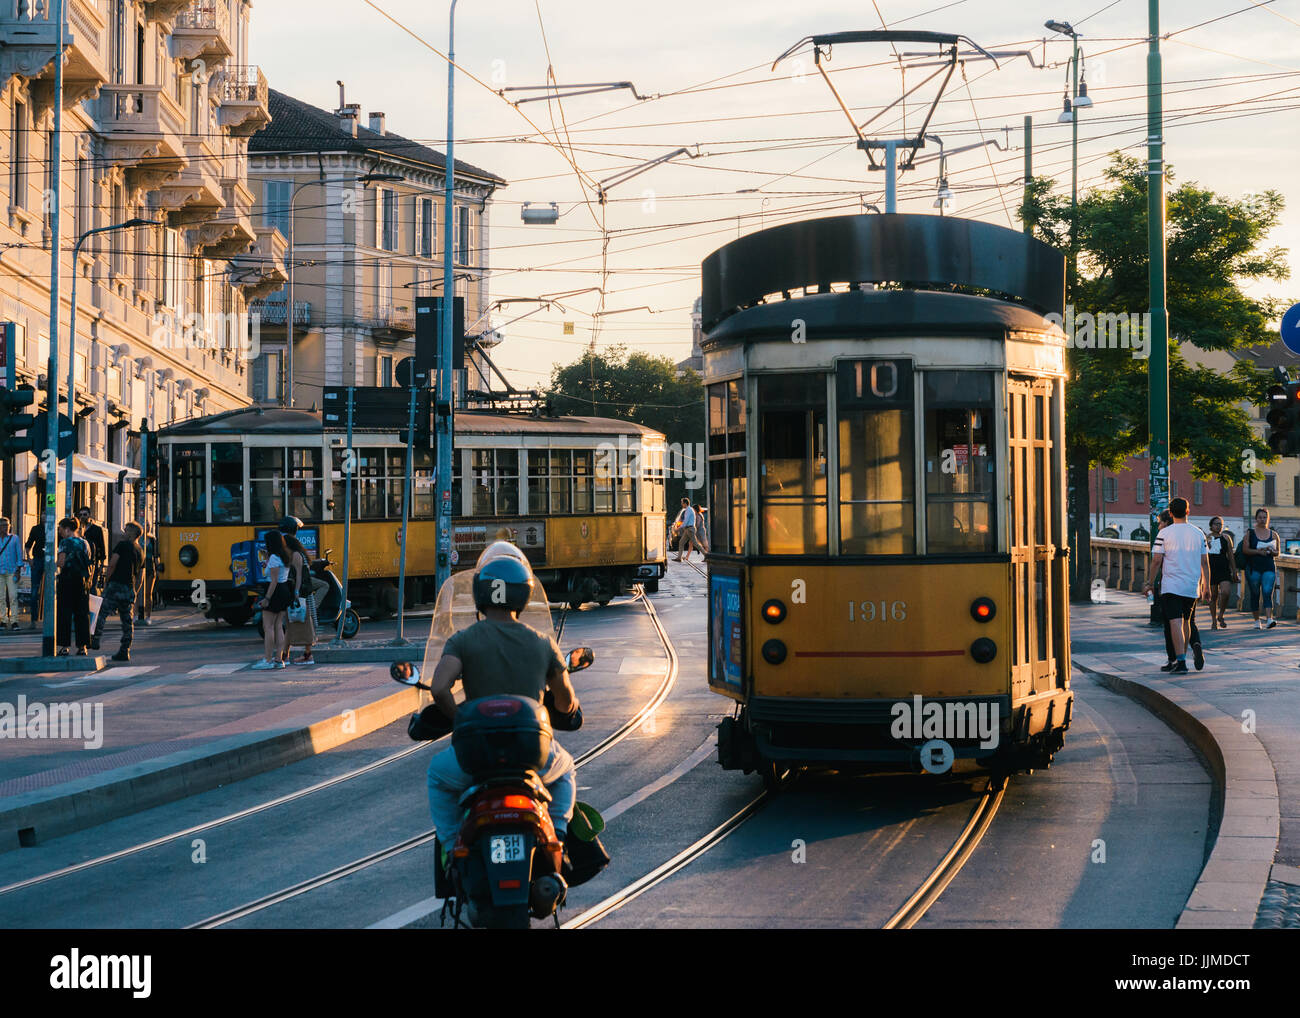 Traditional yellow tram near city centre, Milan, Lombardy, Italy - Stock Image